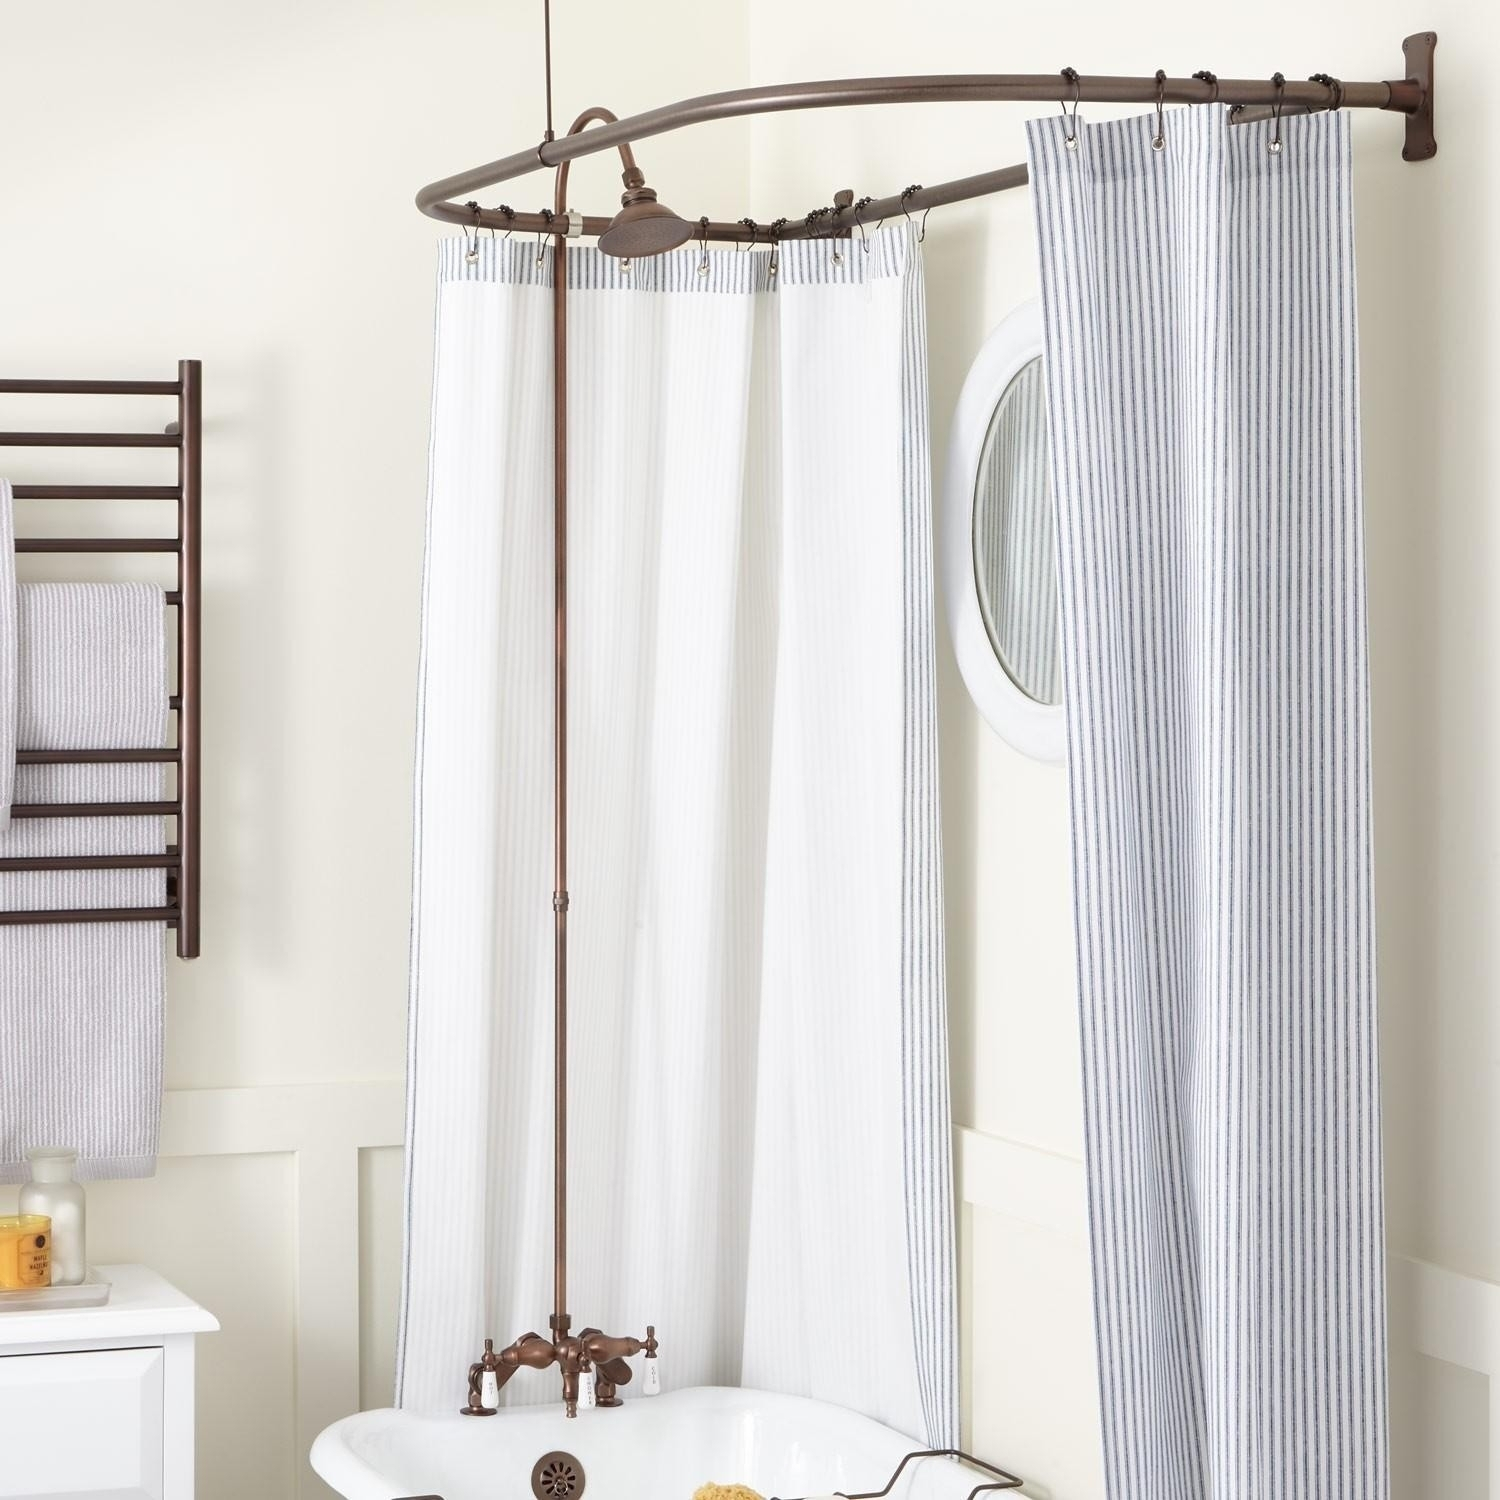 Lowes Bendable Curtain Rod Randolph Indoor And Outdoor Design